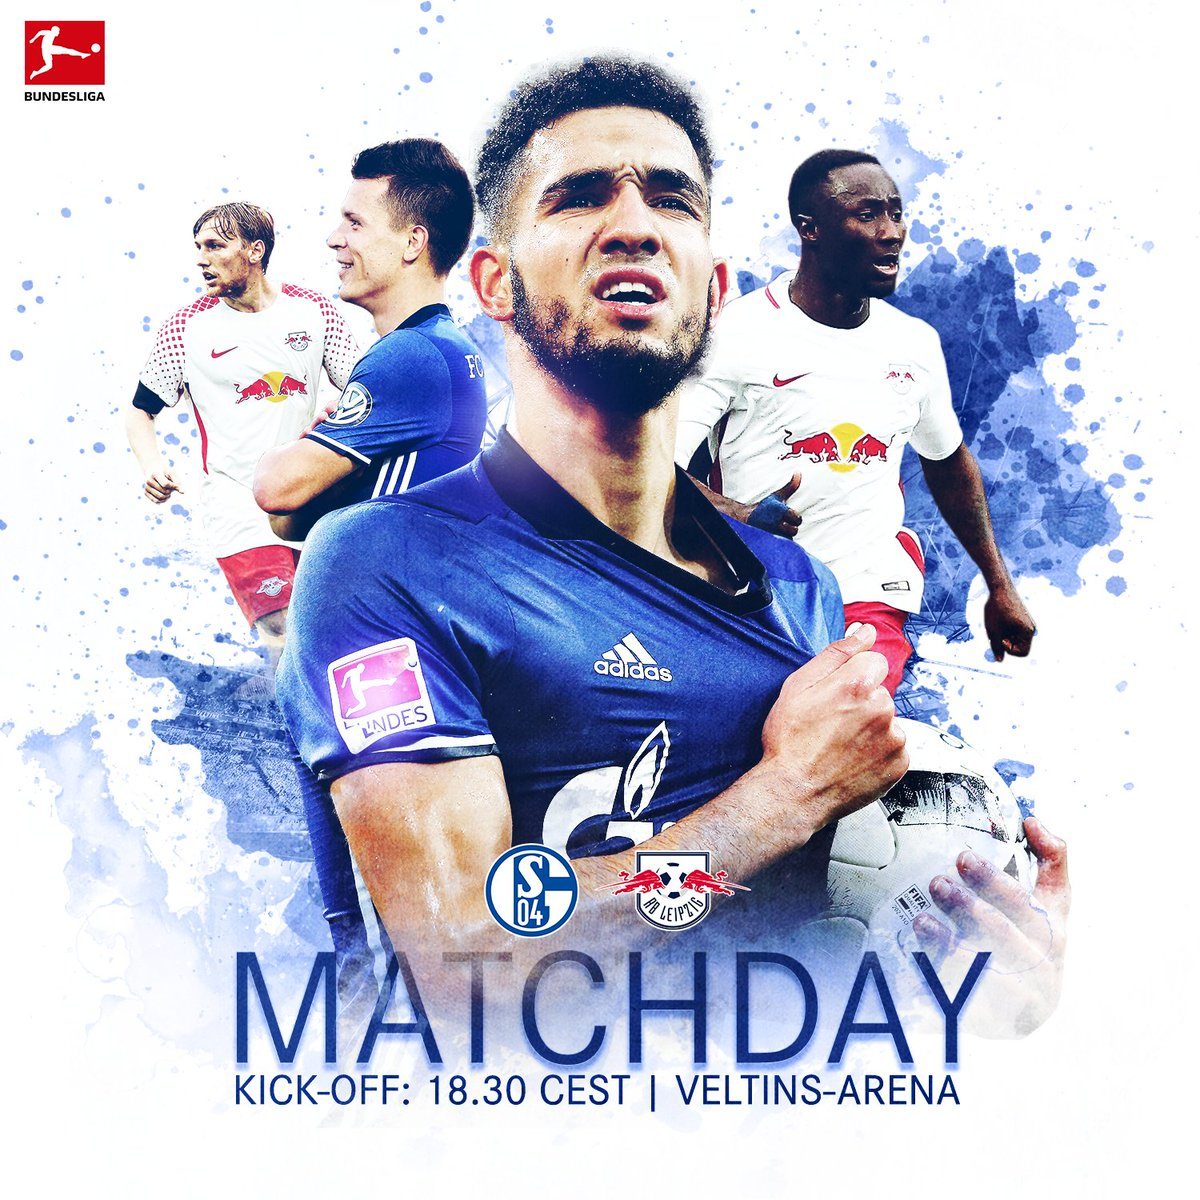 🙌 IT'S FINALLY MATCHDAY! 🙌 ⚽️ #S04 🆚 @RBLeipzig_EN 📍 @VELTINSarena 🕒 1...